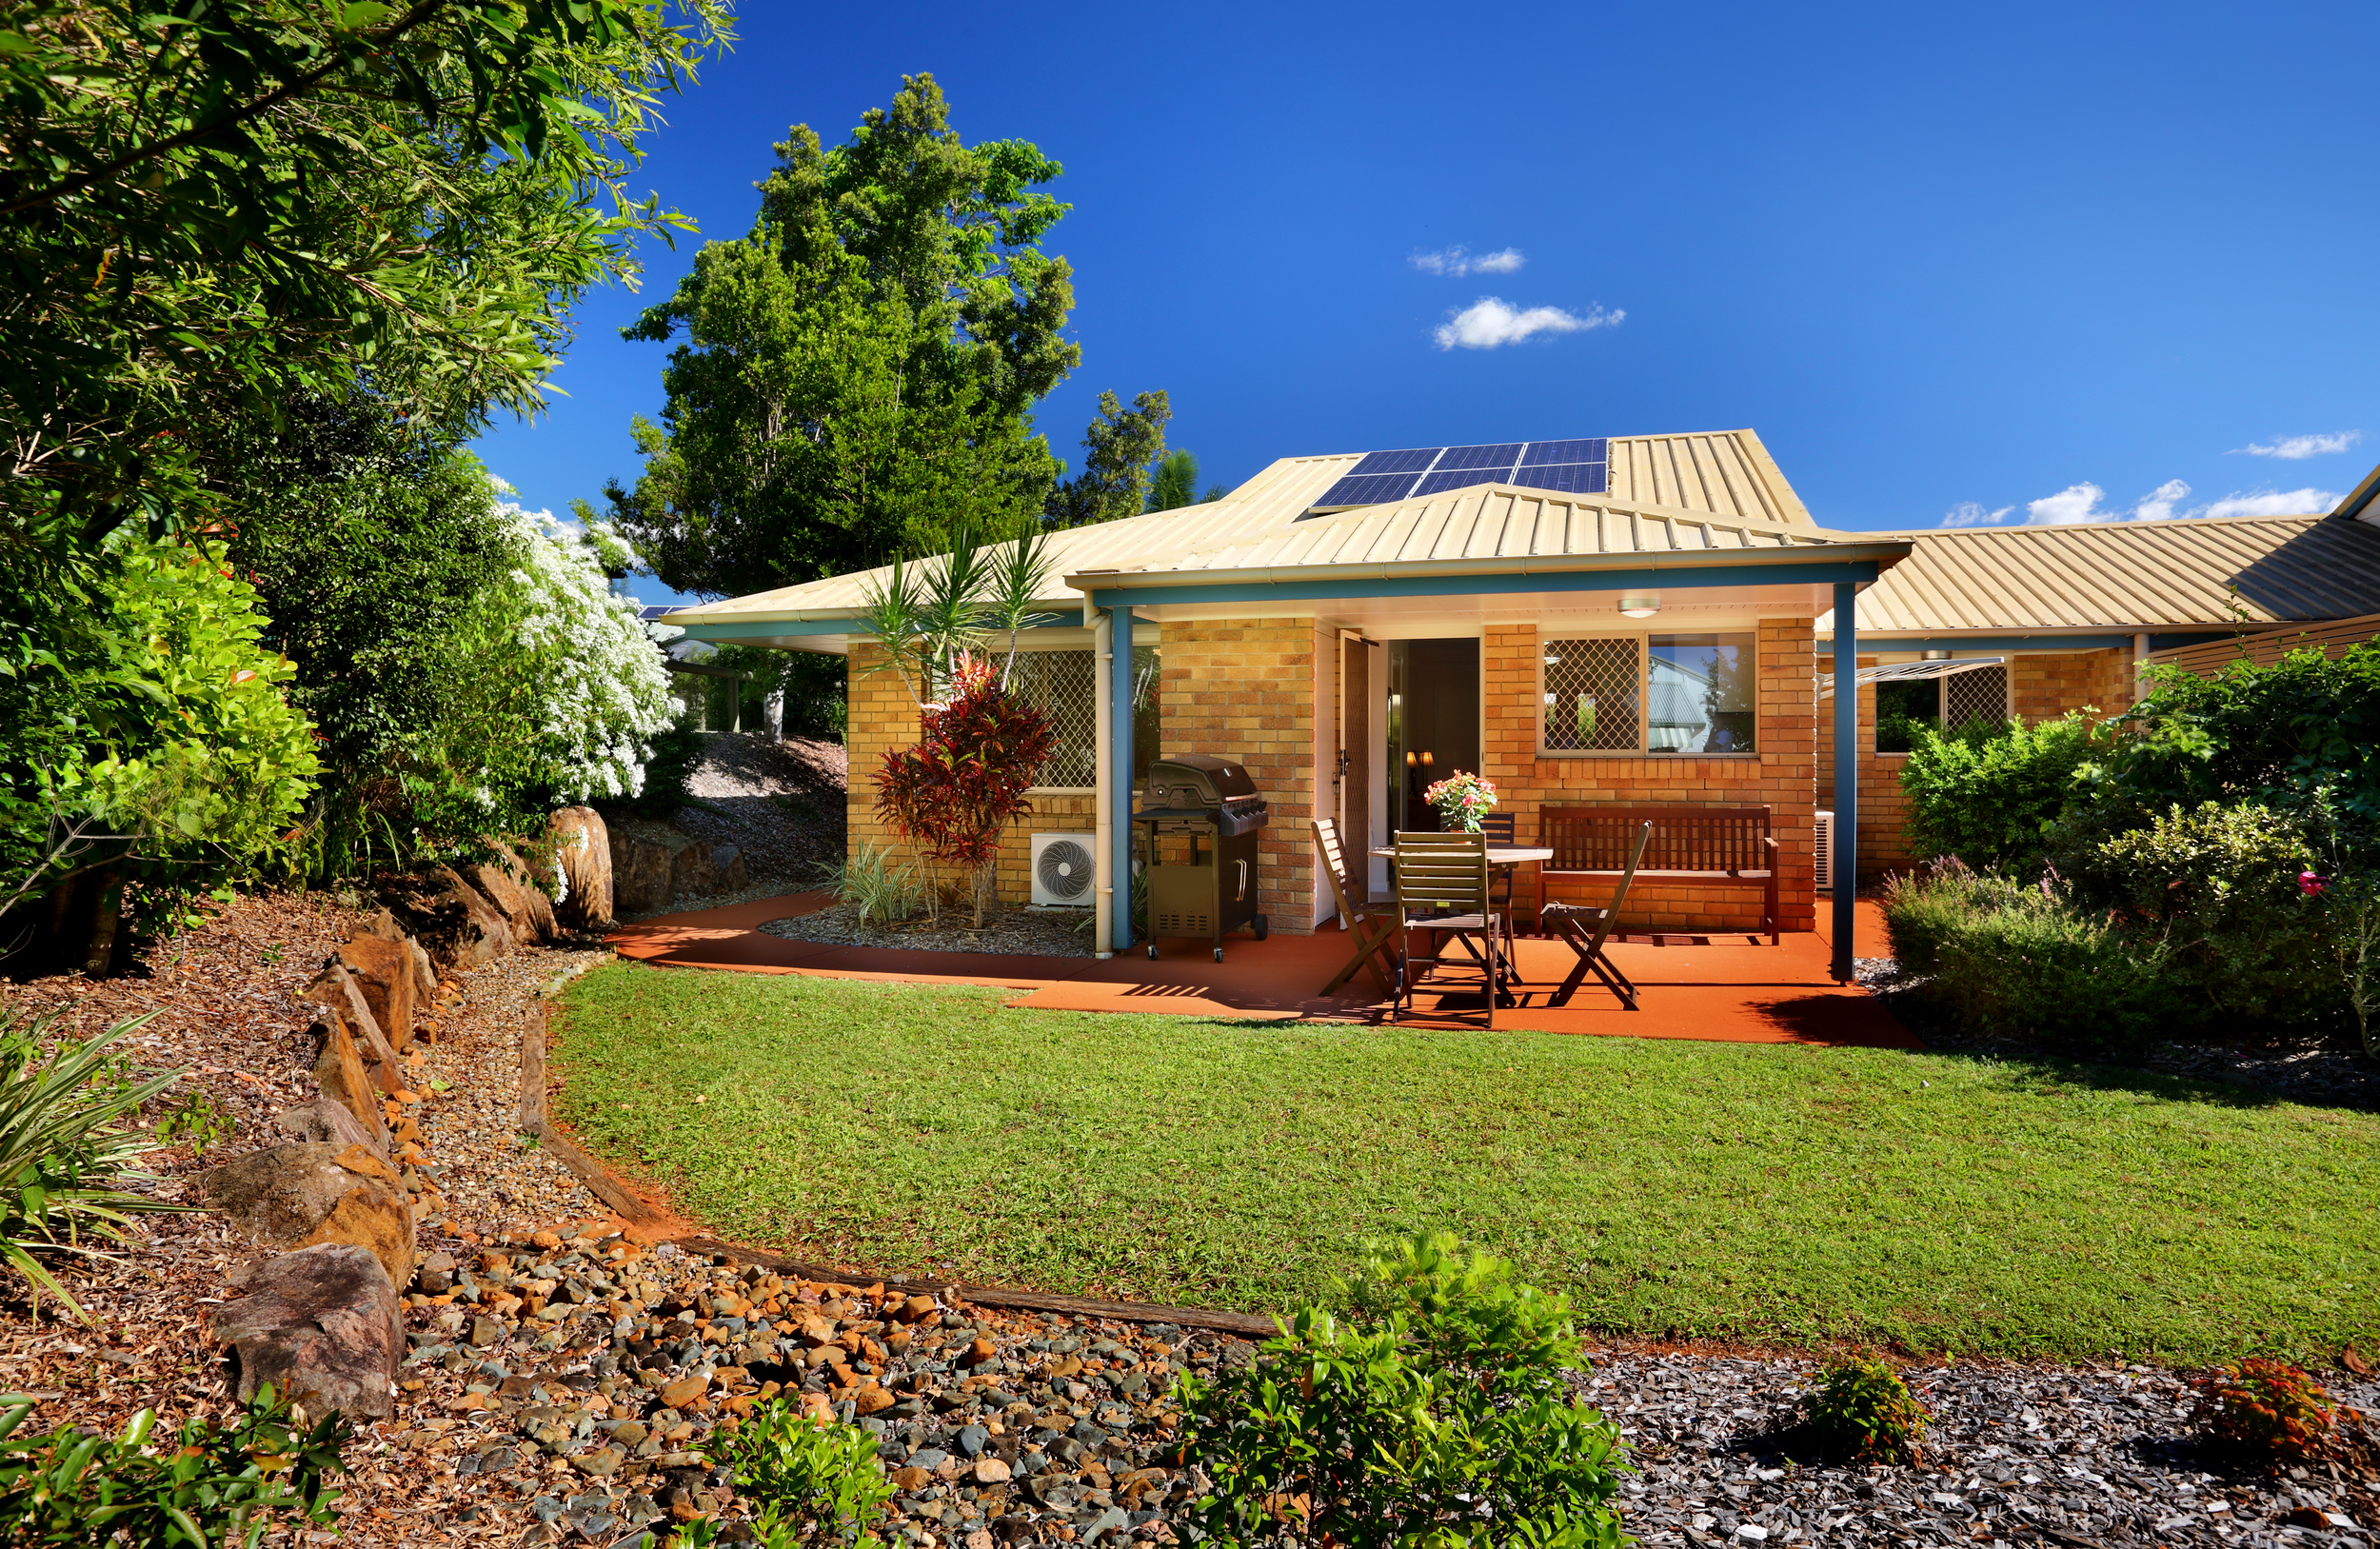 Sundale-retirement-communities-palmwoods5.jpg